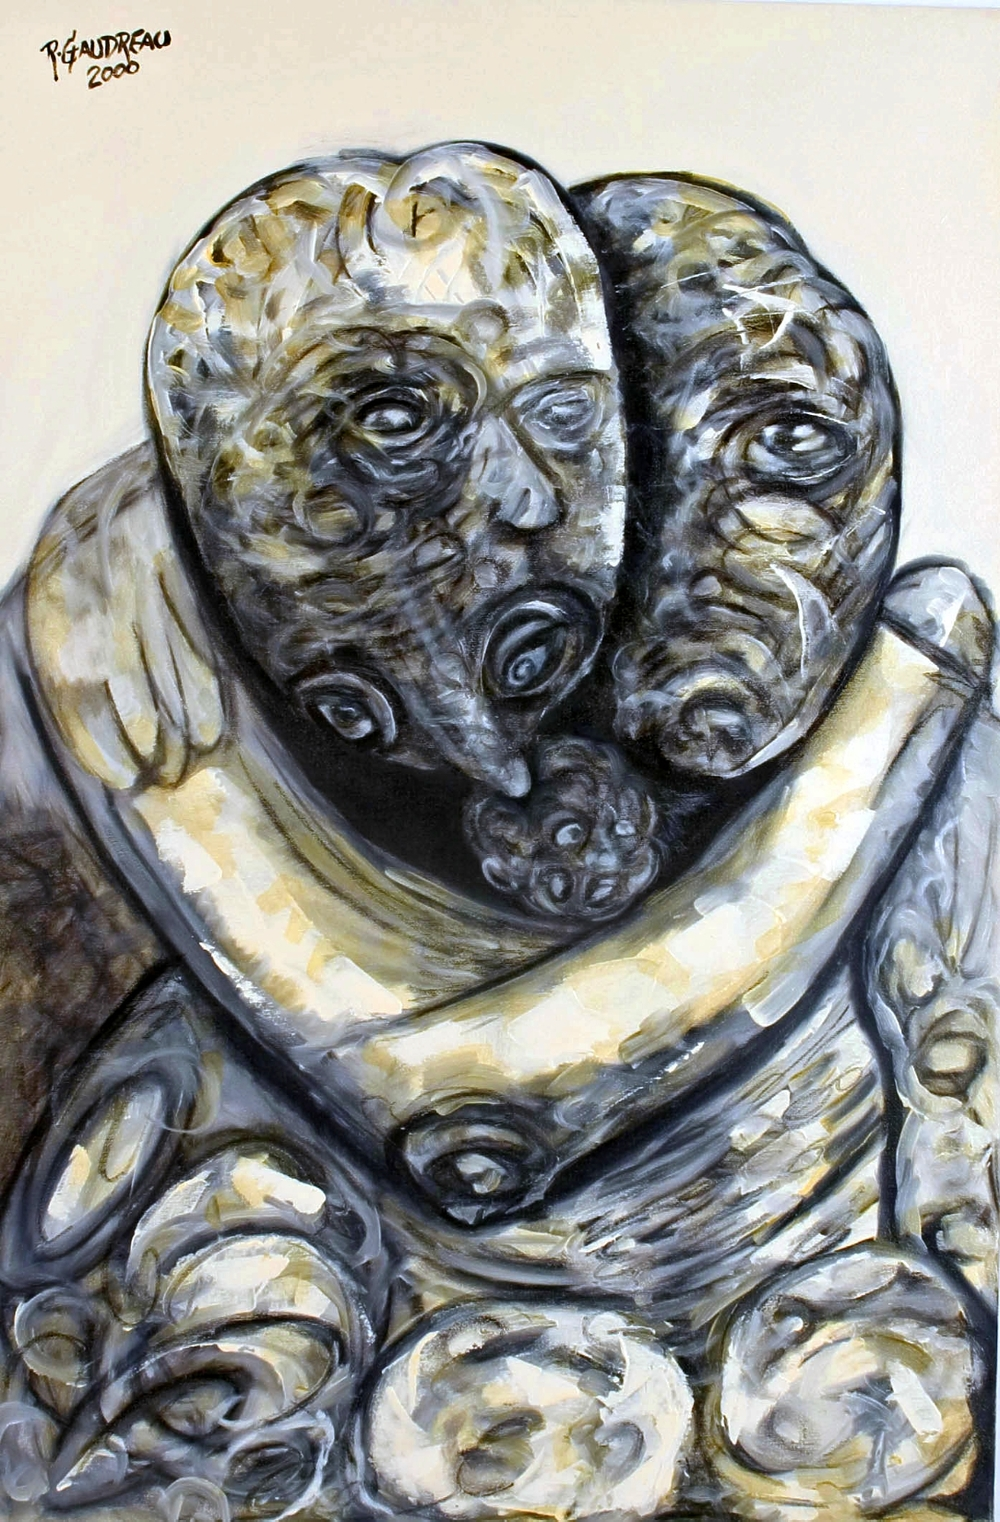 Friend 2000 oil on canvas 36 x 24 inches